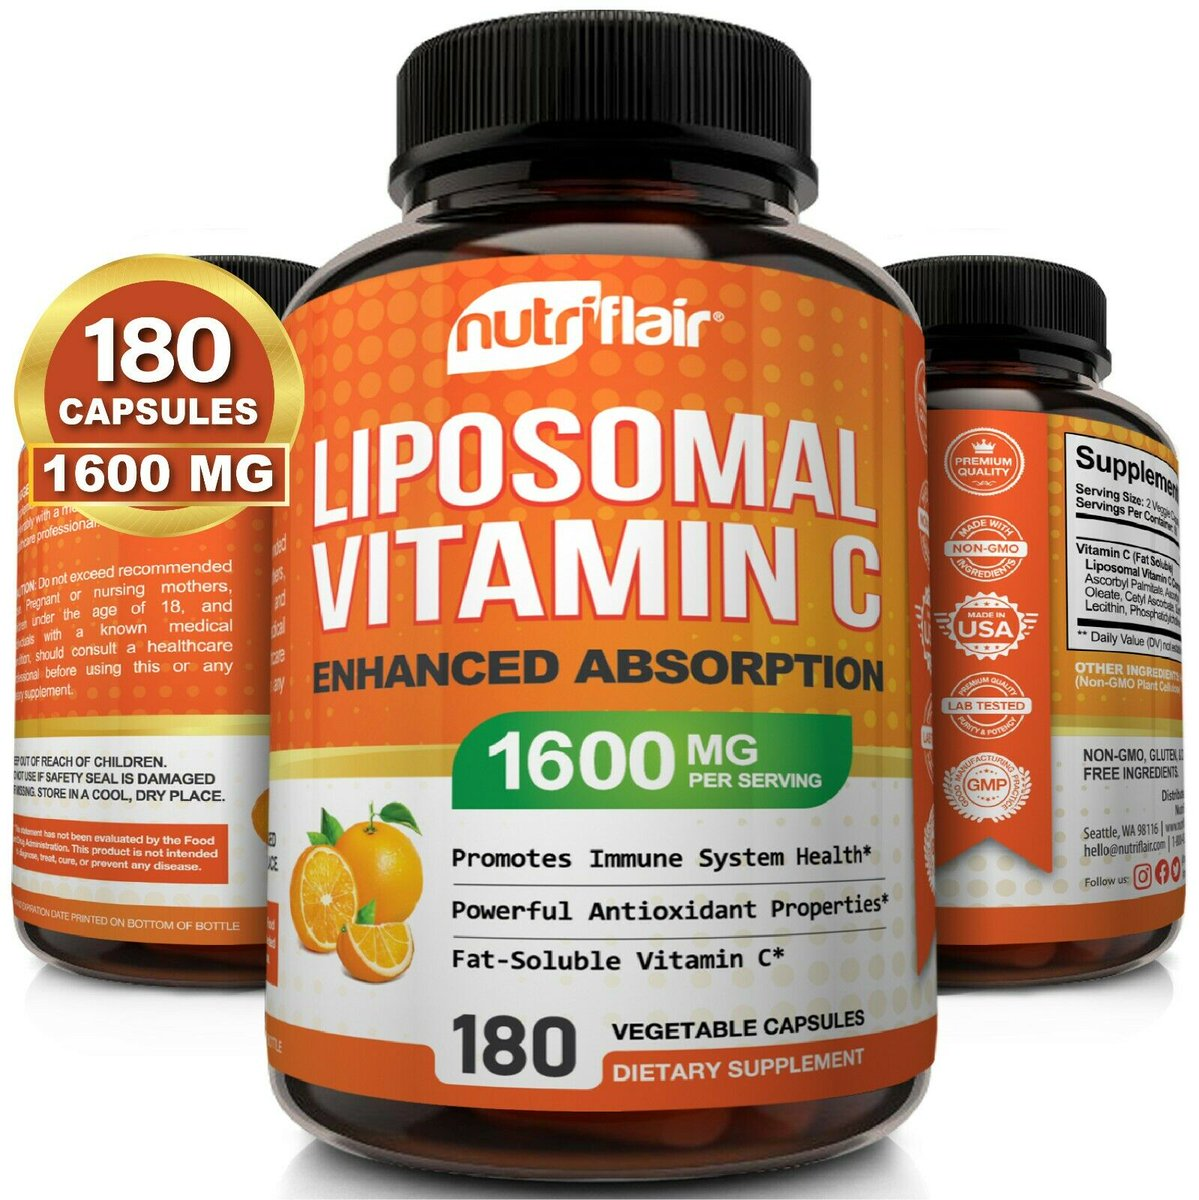 NutriFlair Liposomal Vitamin C 1600mg, 180 Capsules Fat Soluble Vit Supplements Item specifics ...22518https://omarhamad.com/?feed_id=106419https://omarhamad.com/?feed_id=106419